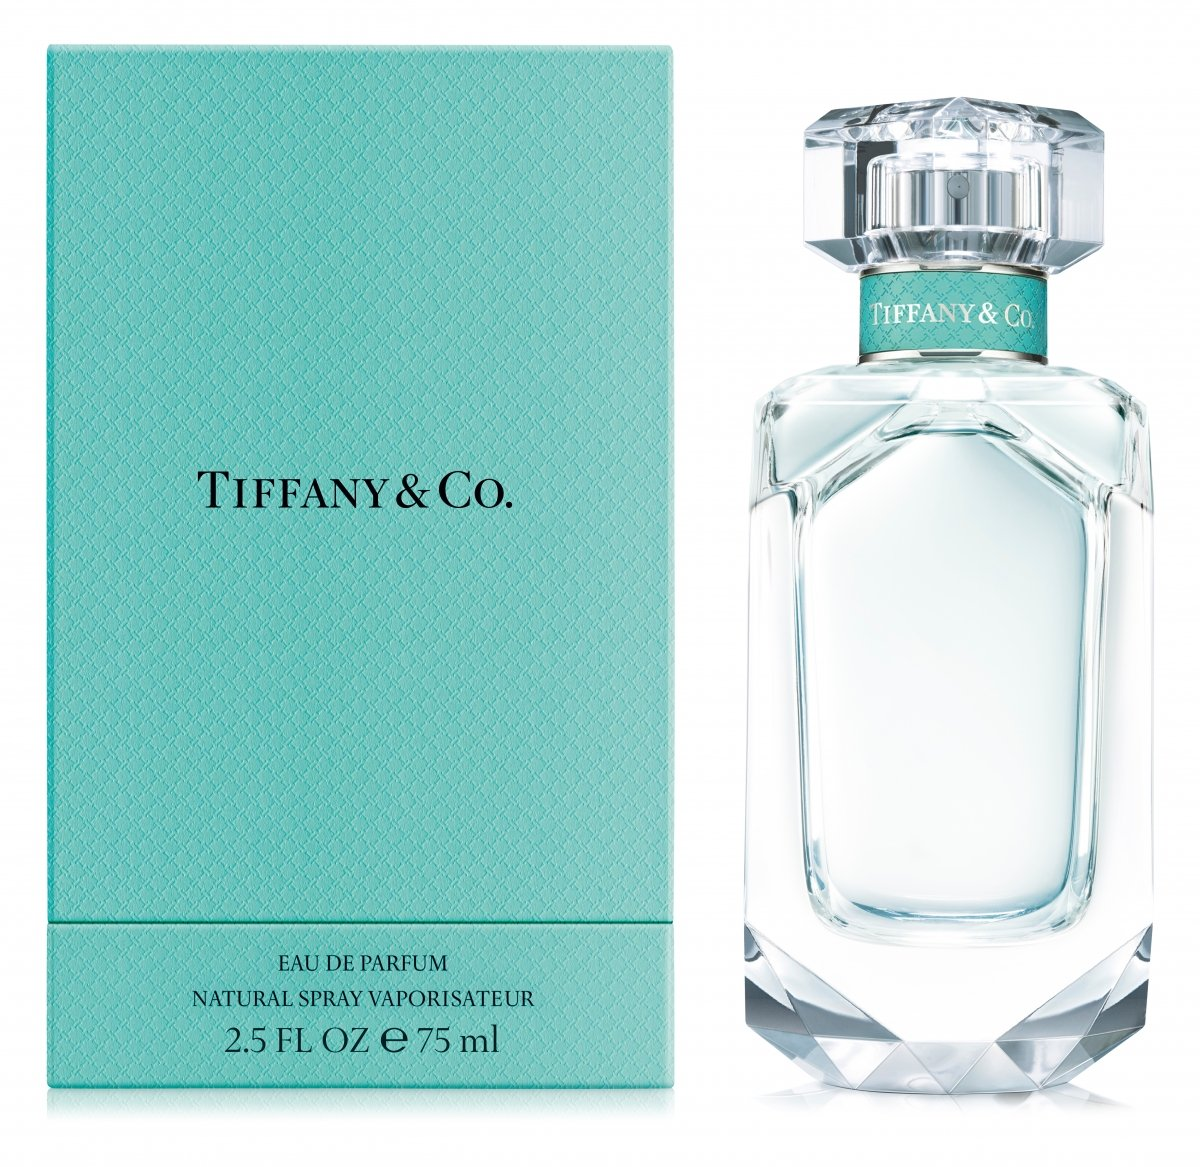 Tiffany co duftbeschreibung und bewertung for Where is tiffany and co located